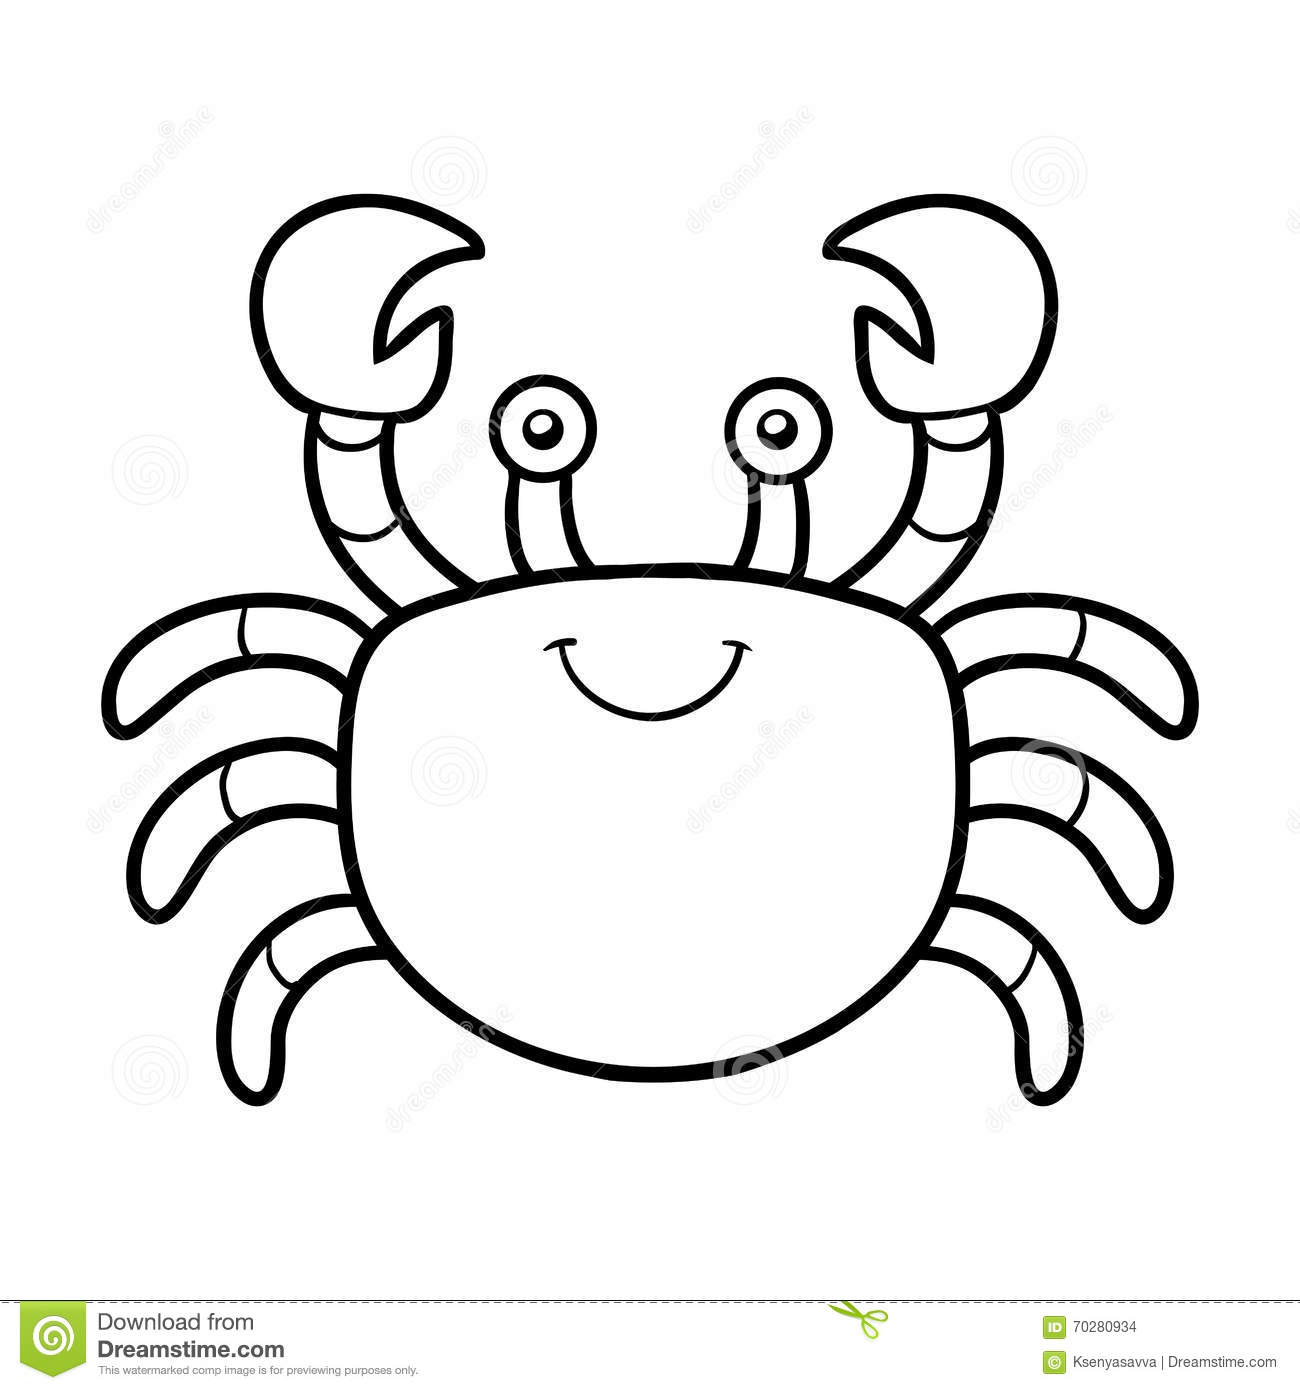 Baby Madchen 2 also Coloriages together with Polo Shirt Outline additionally Stock Illustration Coloring Book Coloring Page Crab Children Image70280934 together with Ausmalbilder Von Lupe Ausdrucken Malvorlagen Kostenlos. on design coloring pages